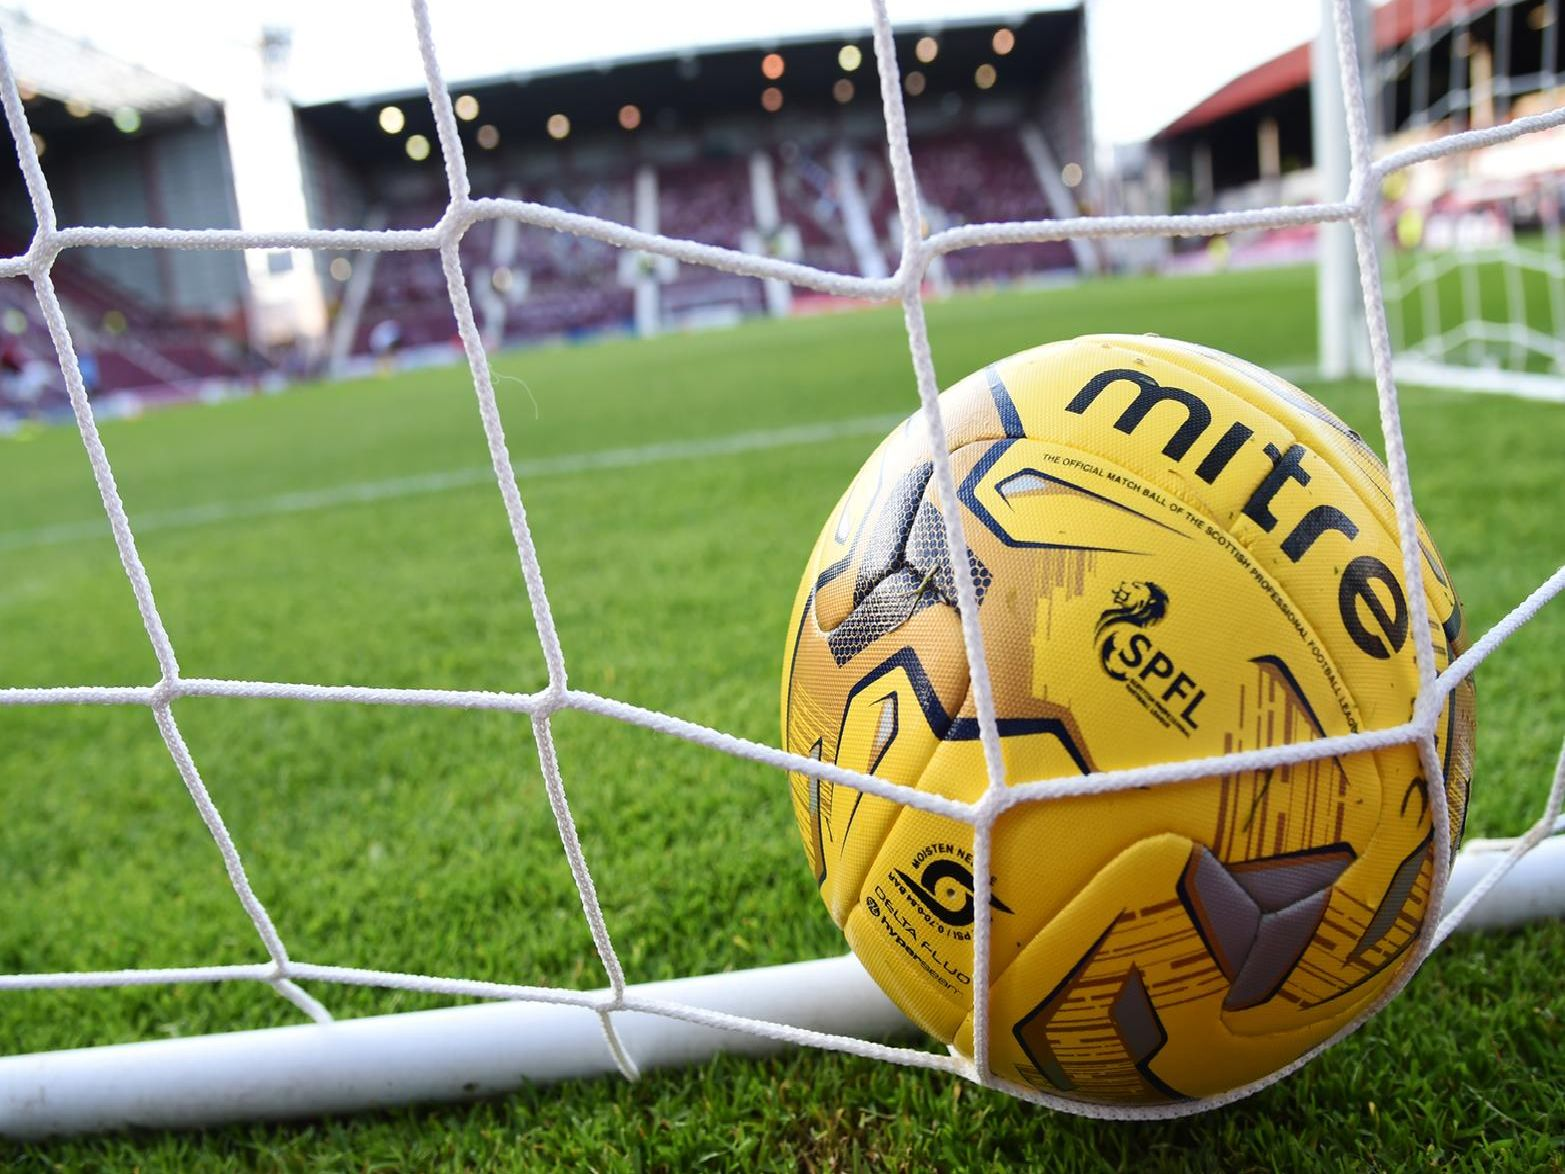 A general view of an SPFL ball in a goal net